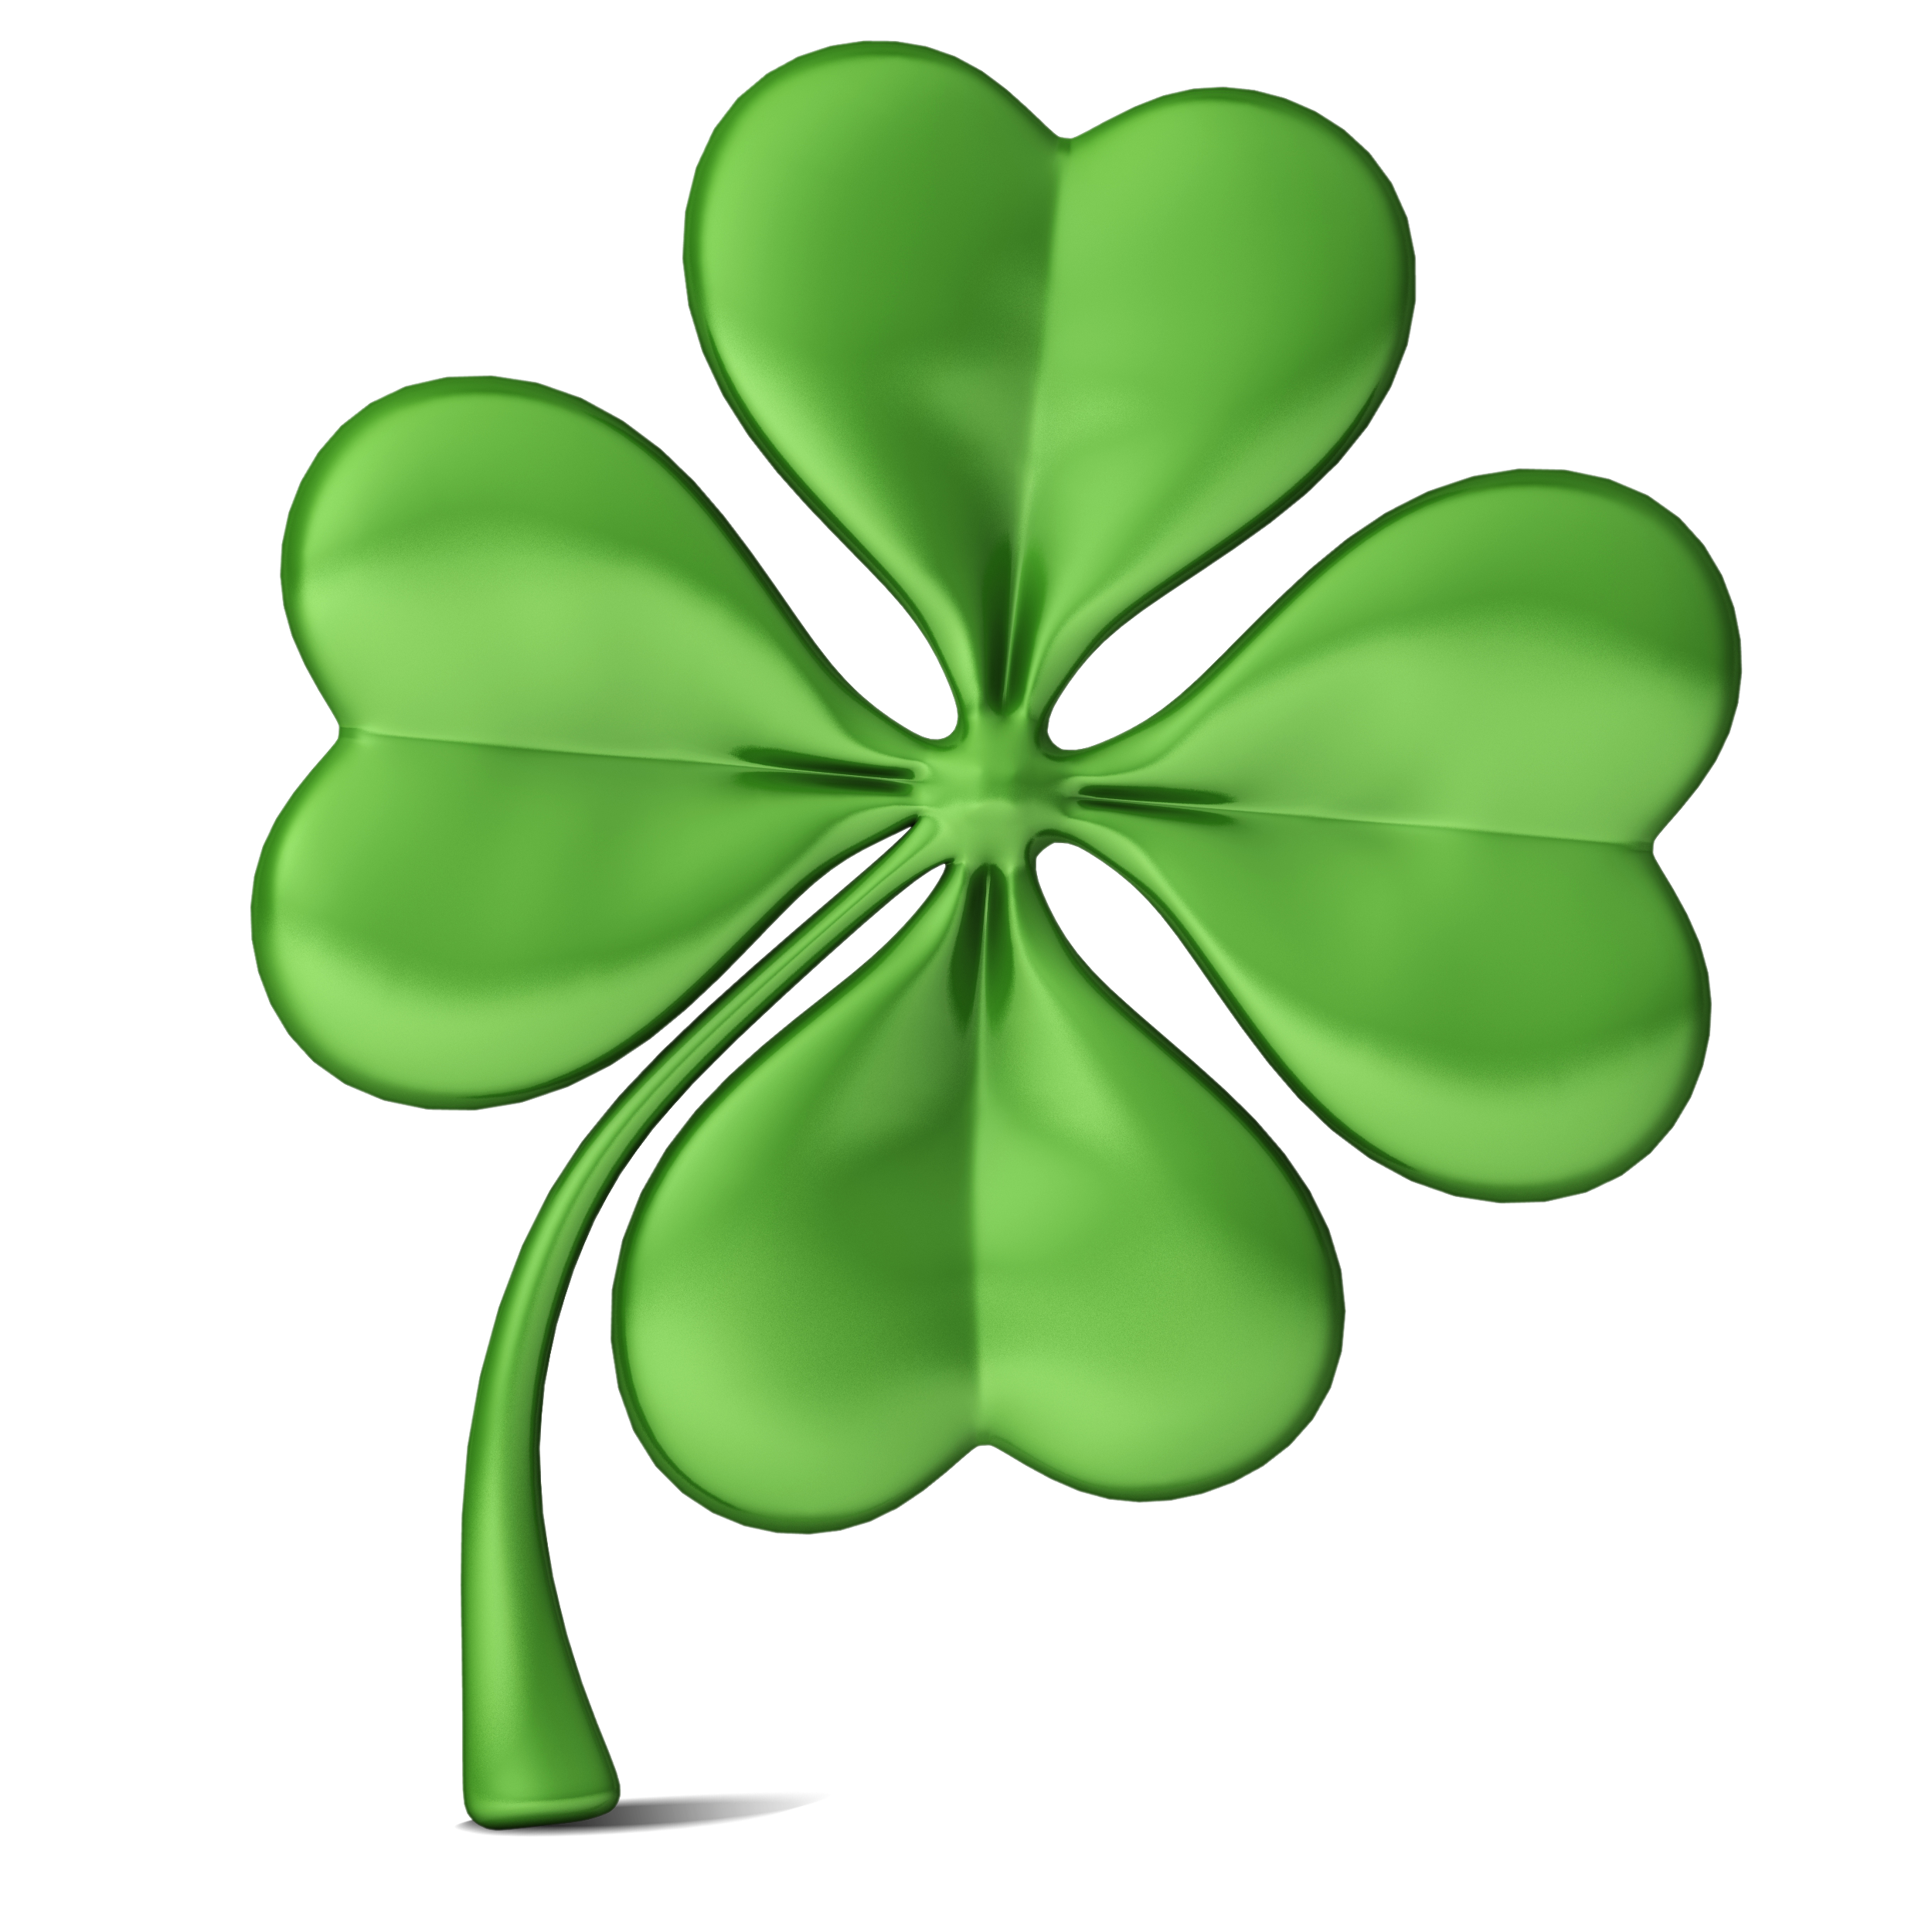 Png image with transparent. Clover clipart clear background